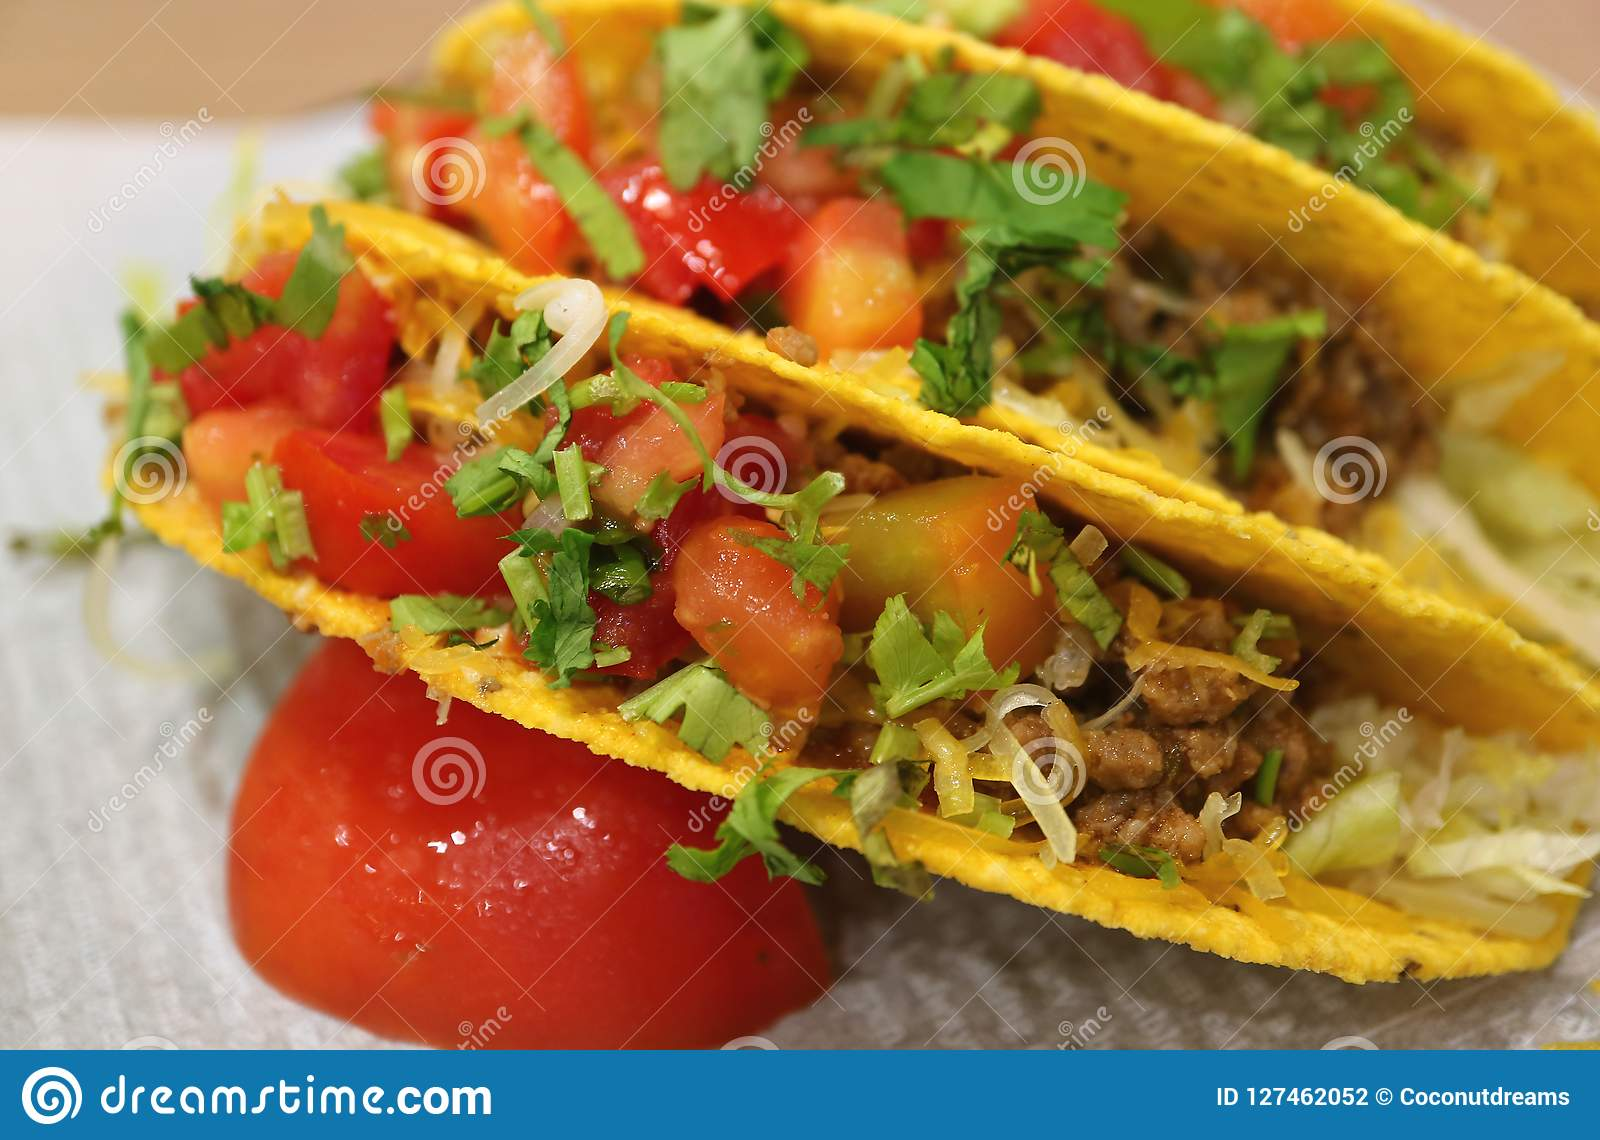 Close up of beef tacos with salsa sauce, tasty Mexican fast food